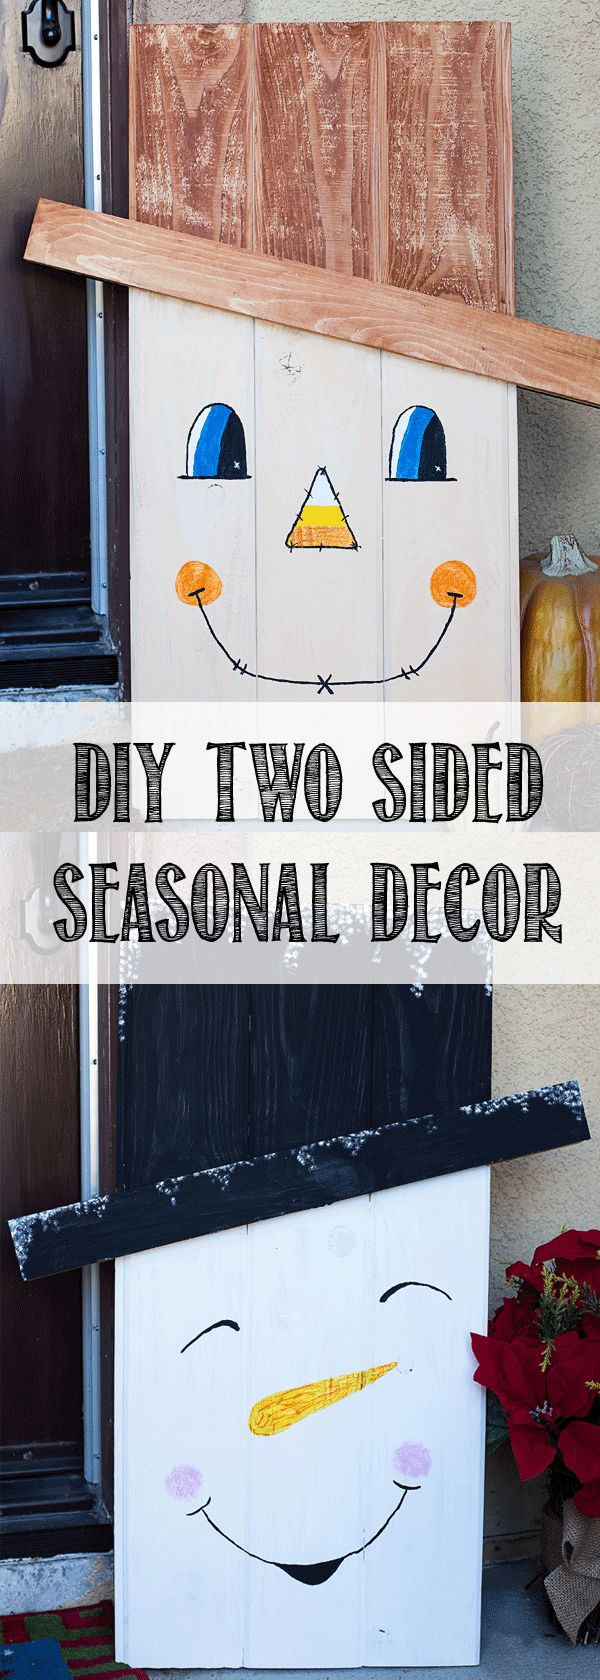 2 sided seasonal decor!  Learn how to make this great DIY Two Sided Seasonal Character.  1 projects takes you from Halloween, Thanksgiving and into Christmas.